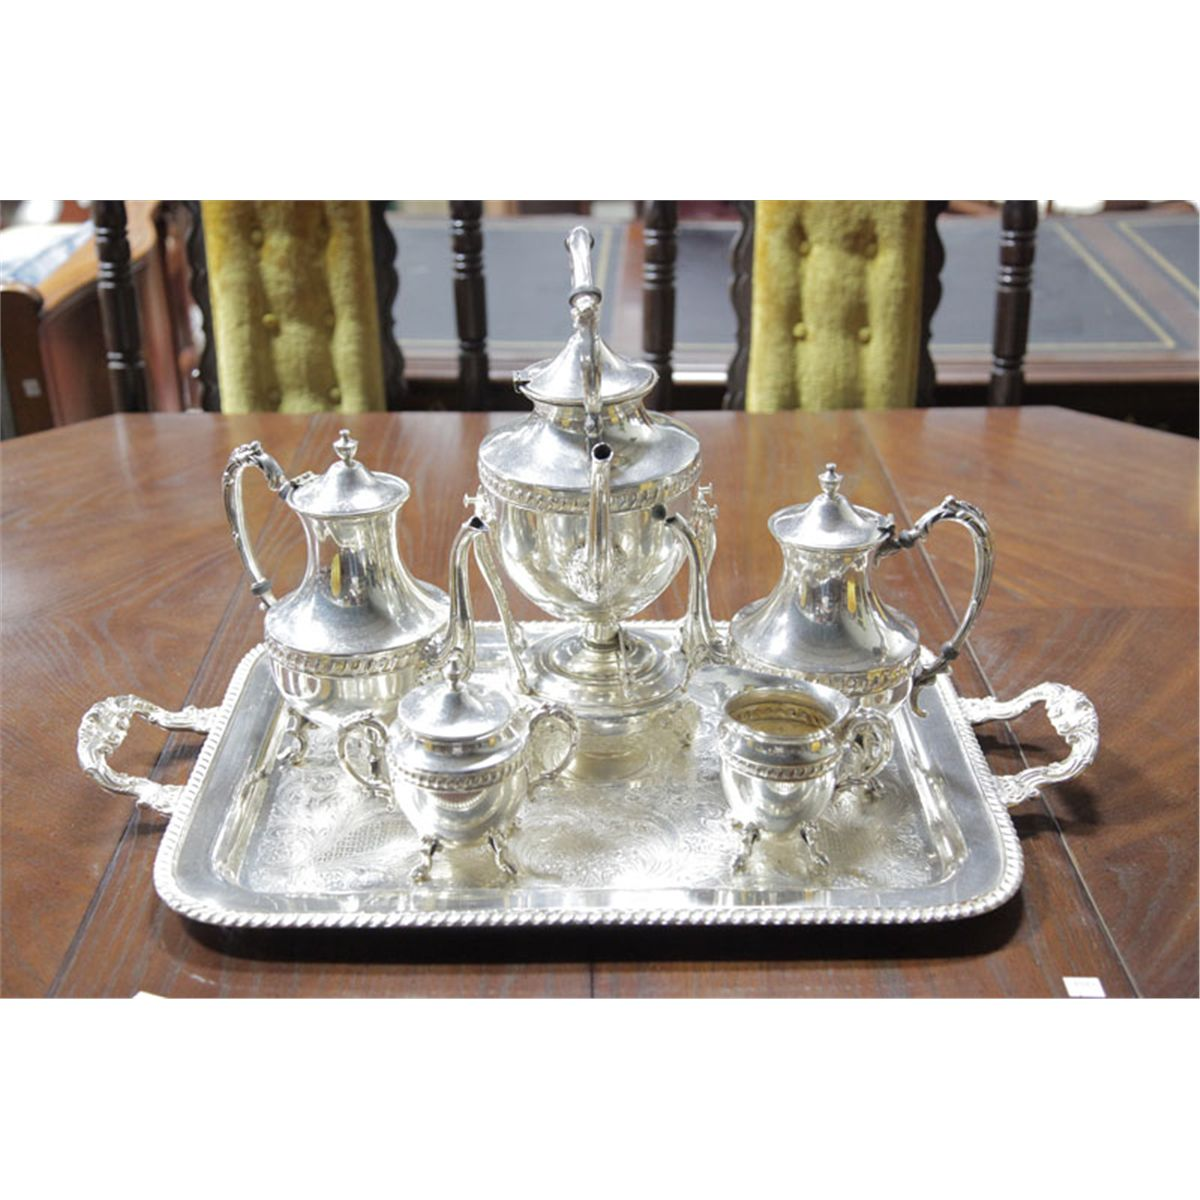 Six Piece Silver Plated Tea Set On Copper And Including Water Pot With Burner 14 1 4 H Co